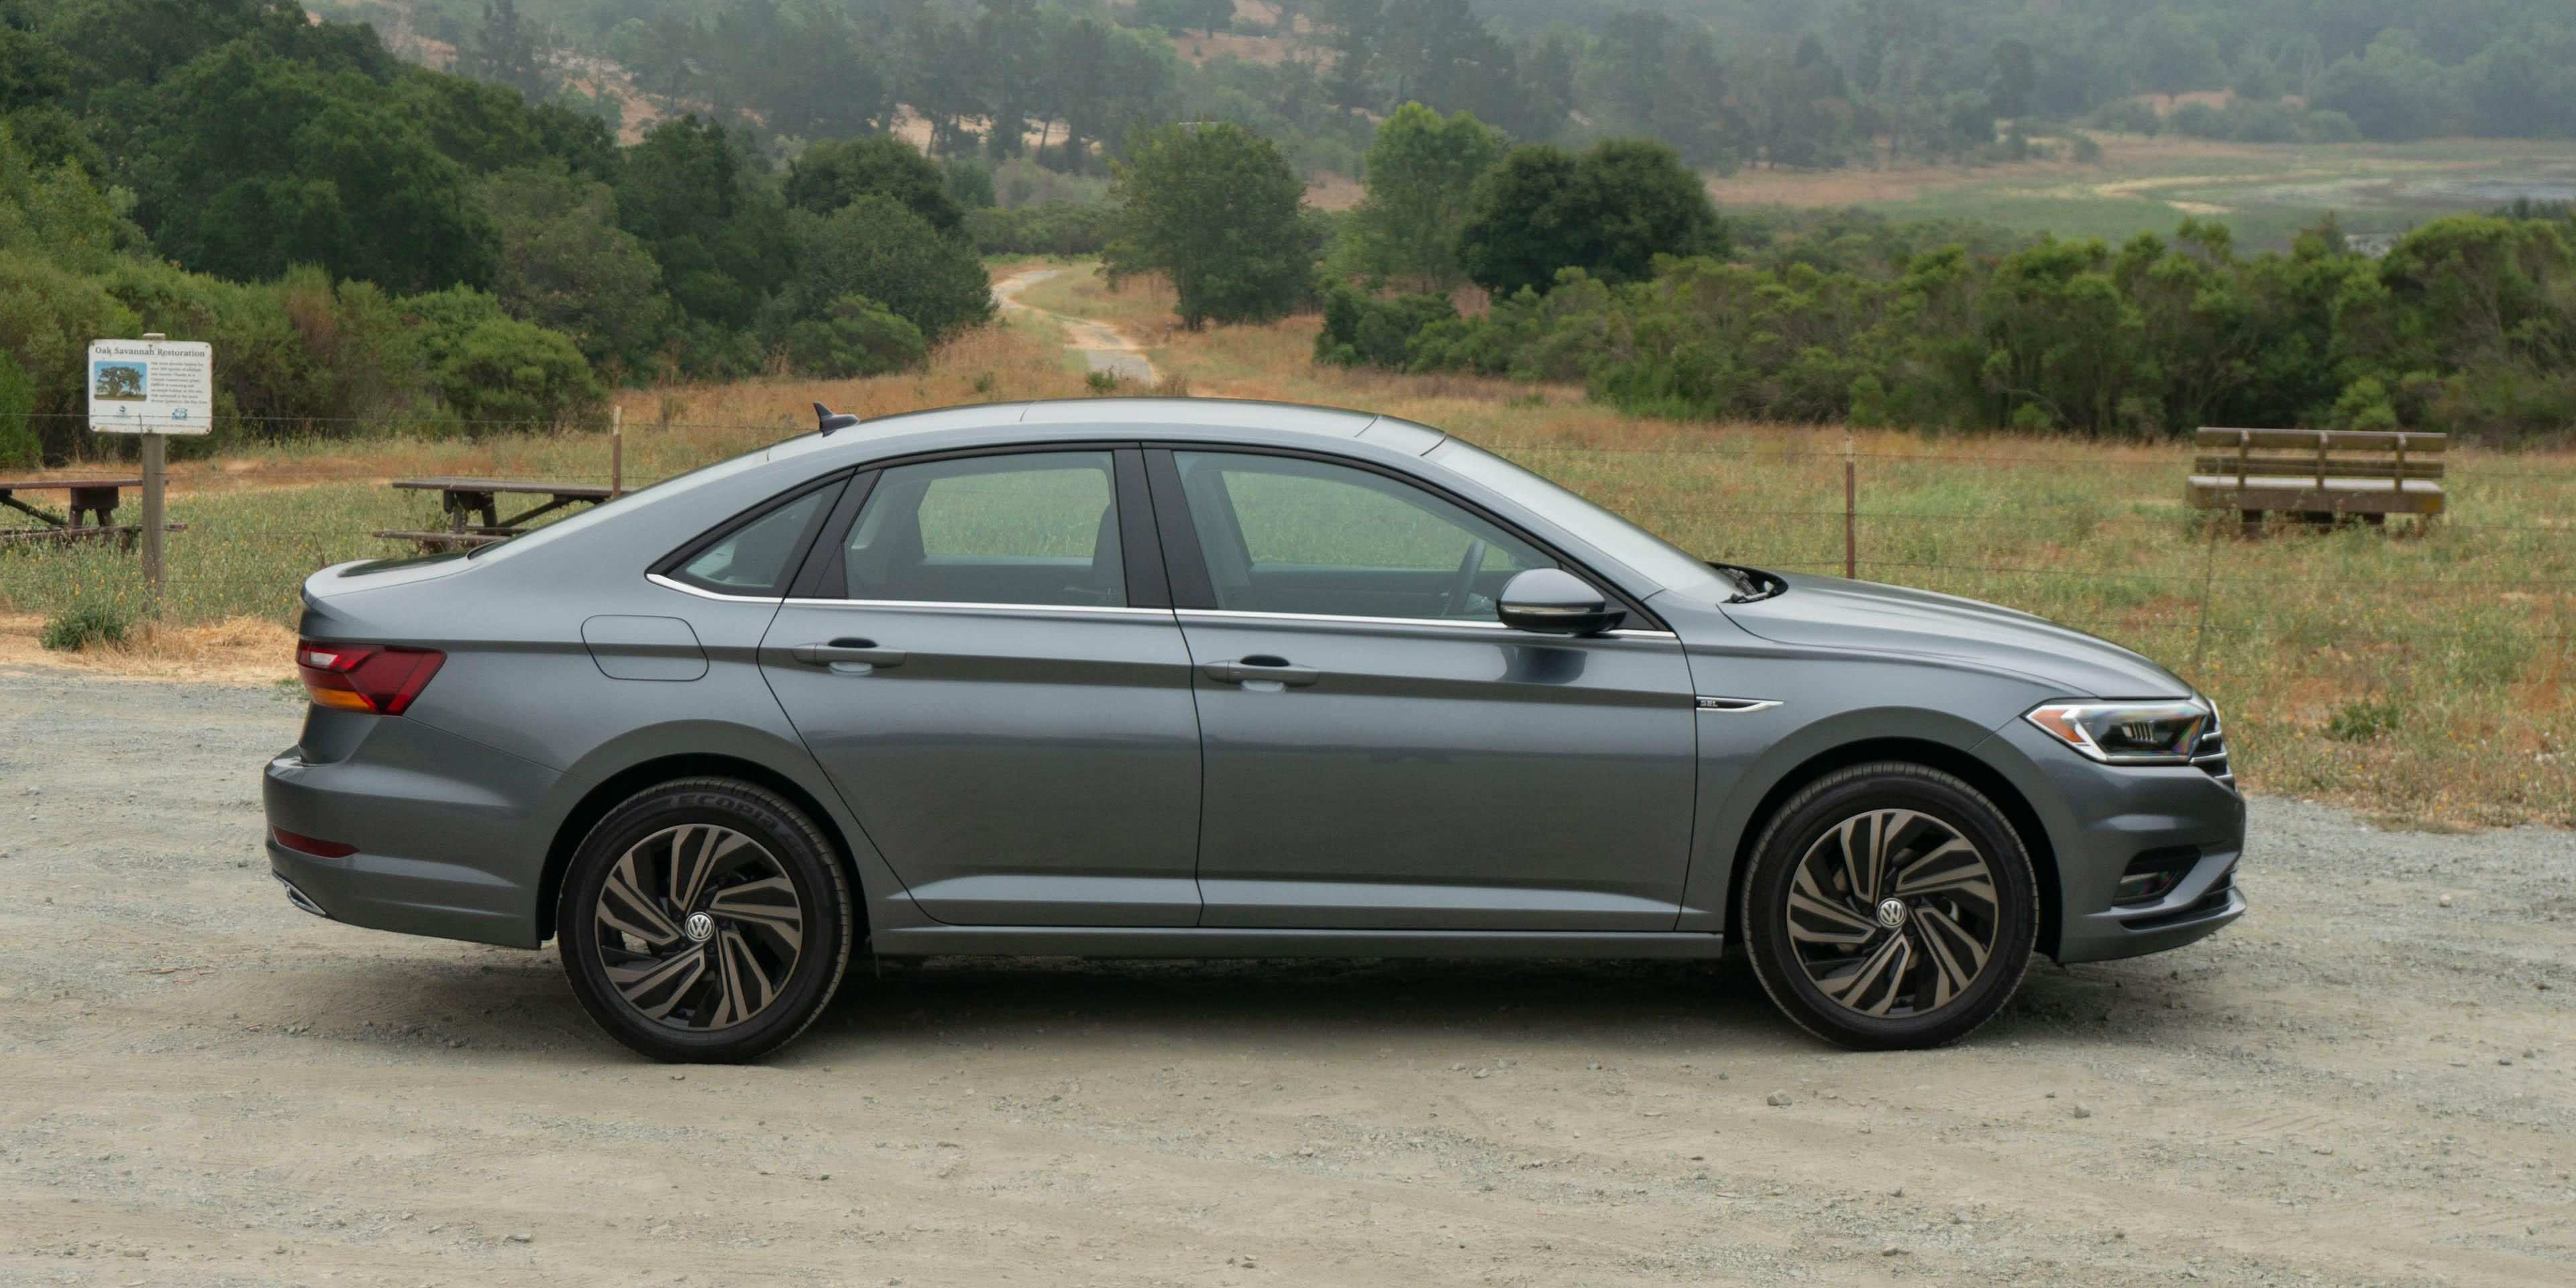 96 All New Volkswagen Jetta 2019 India Reviews for Volkswagen Jetta 2019 India